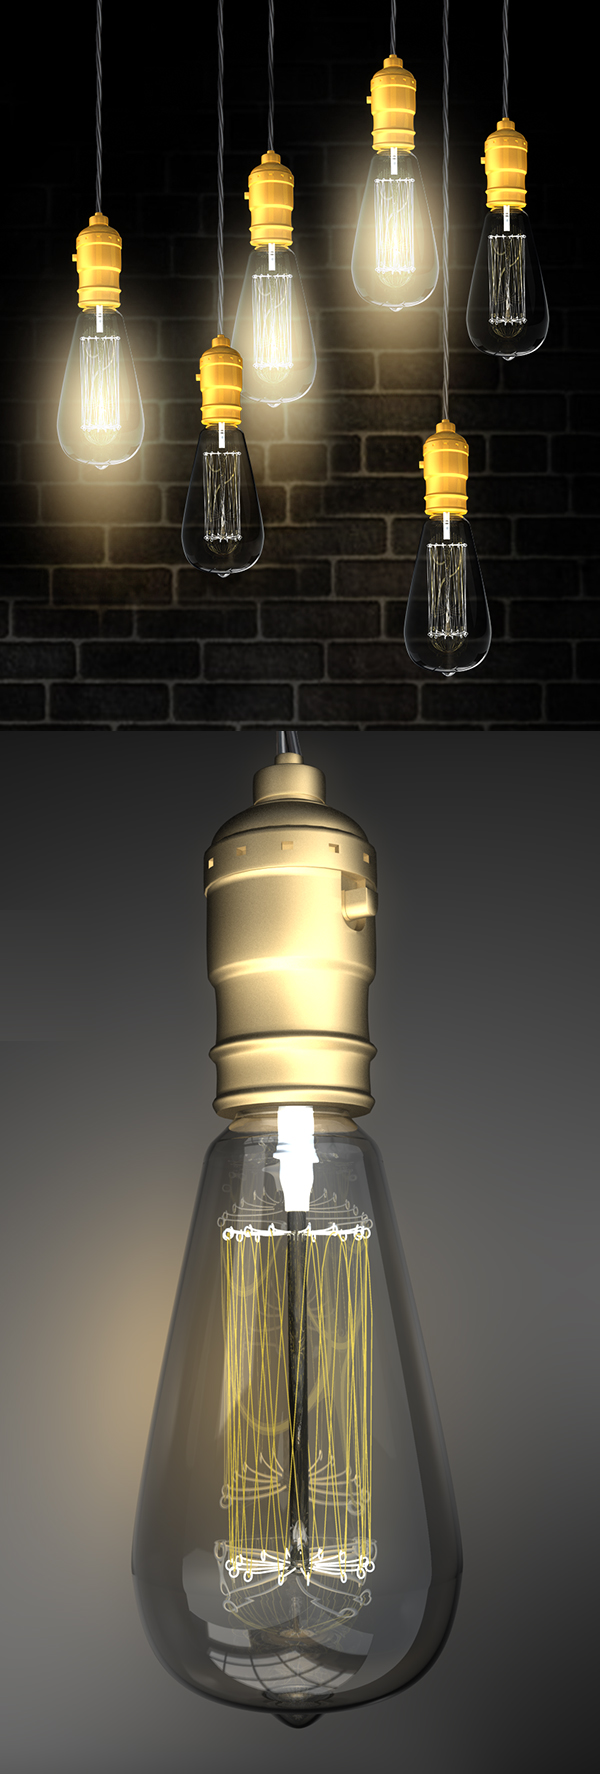 Free Bulb Lights PSD Mockup Templates